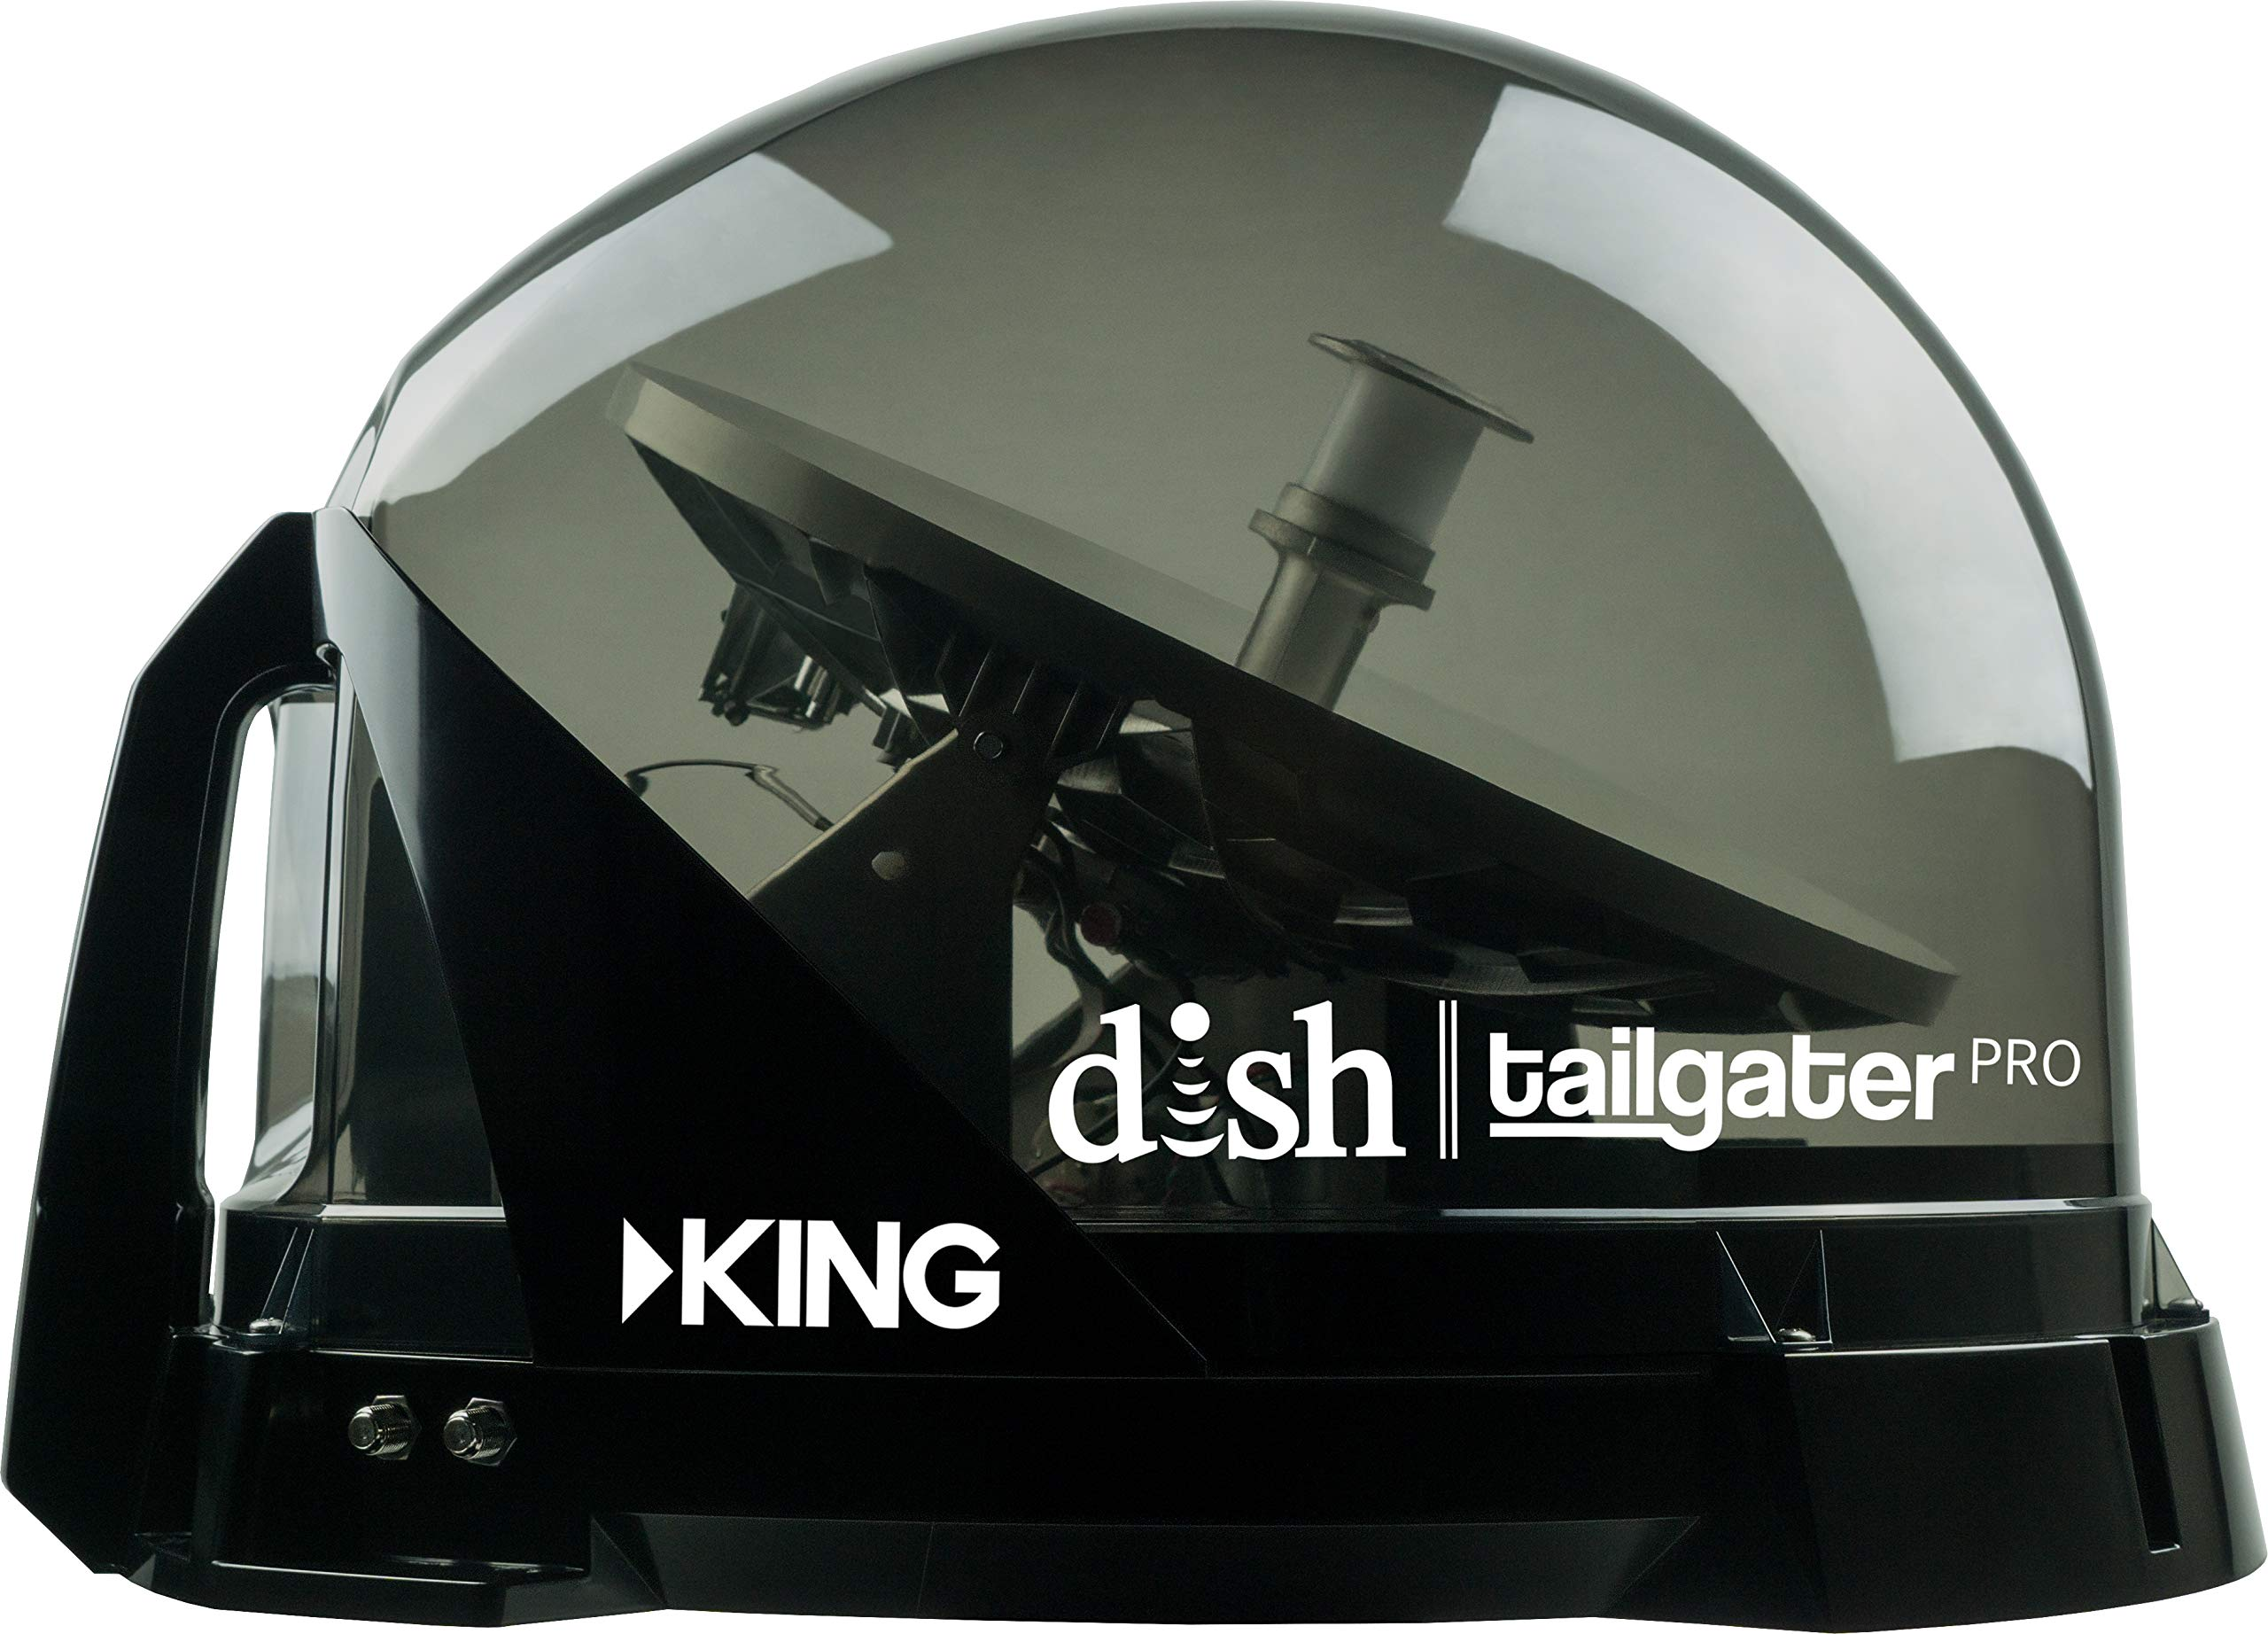 KING DTP4900 DISH Tailgater Pro Premium Portable/Roof Mountable Satellite TV Antenna